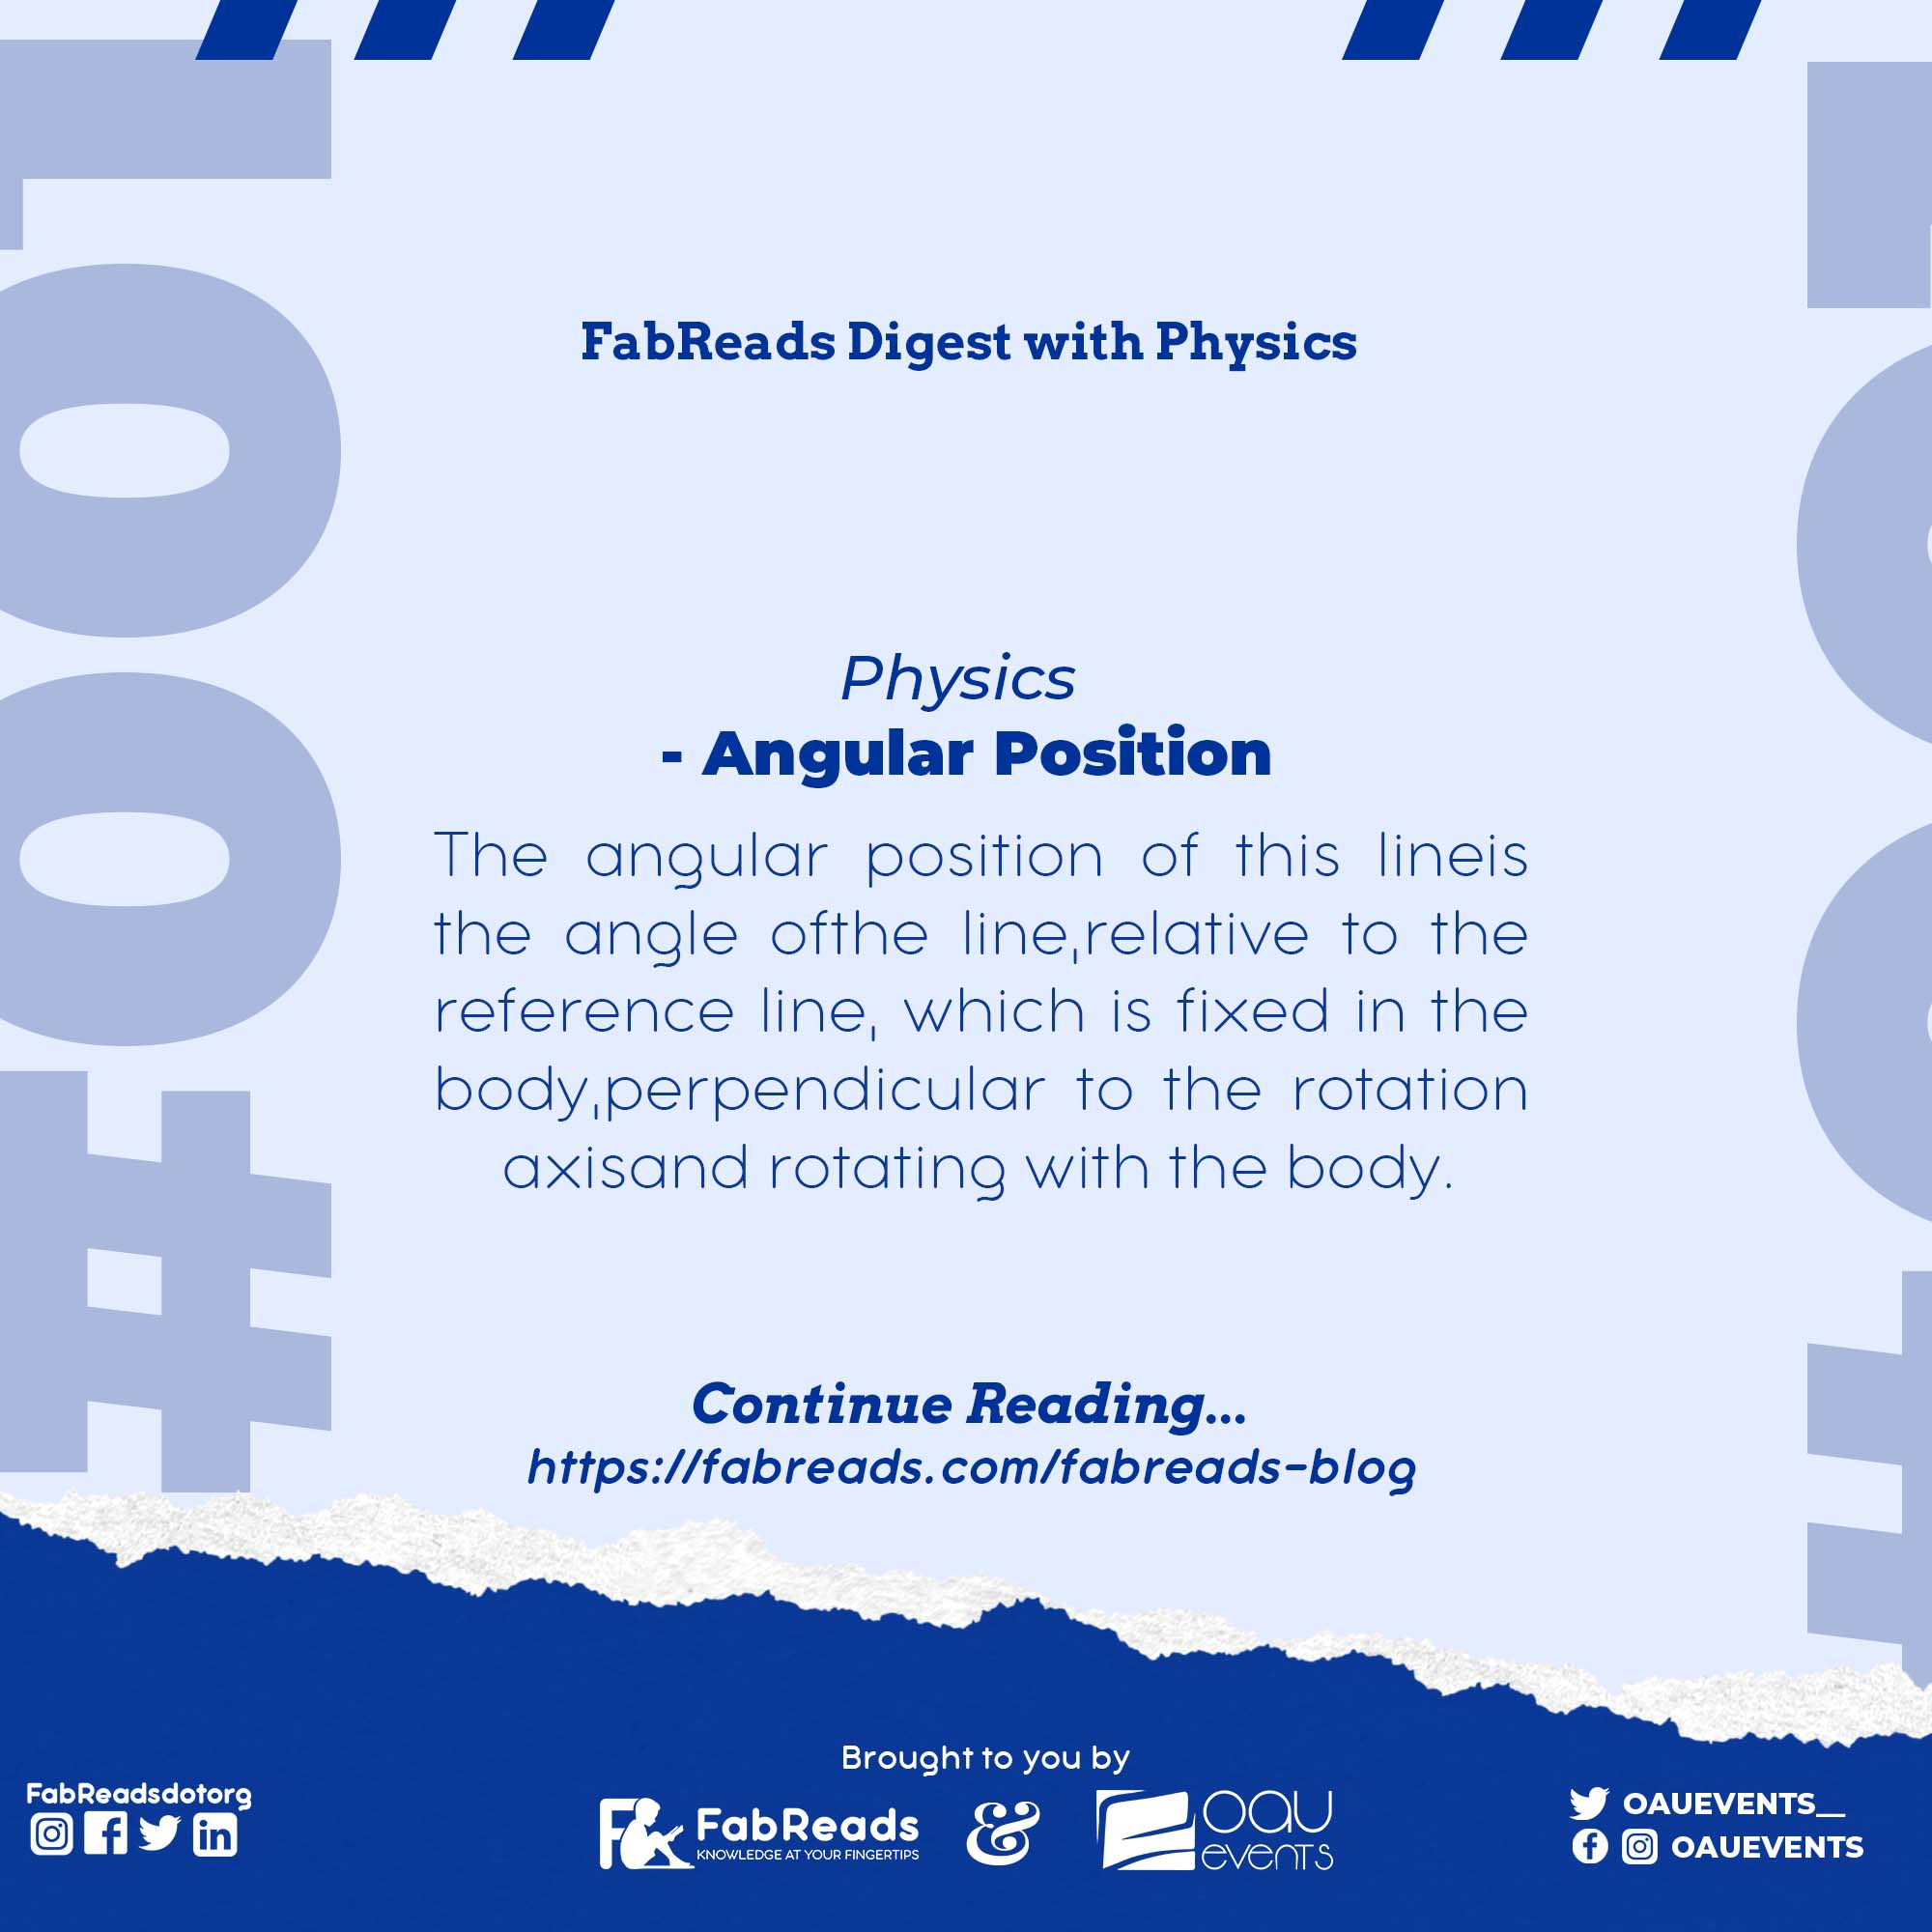 FabReads Digest with Physics 001 (Angular Position)